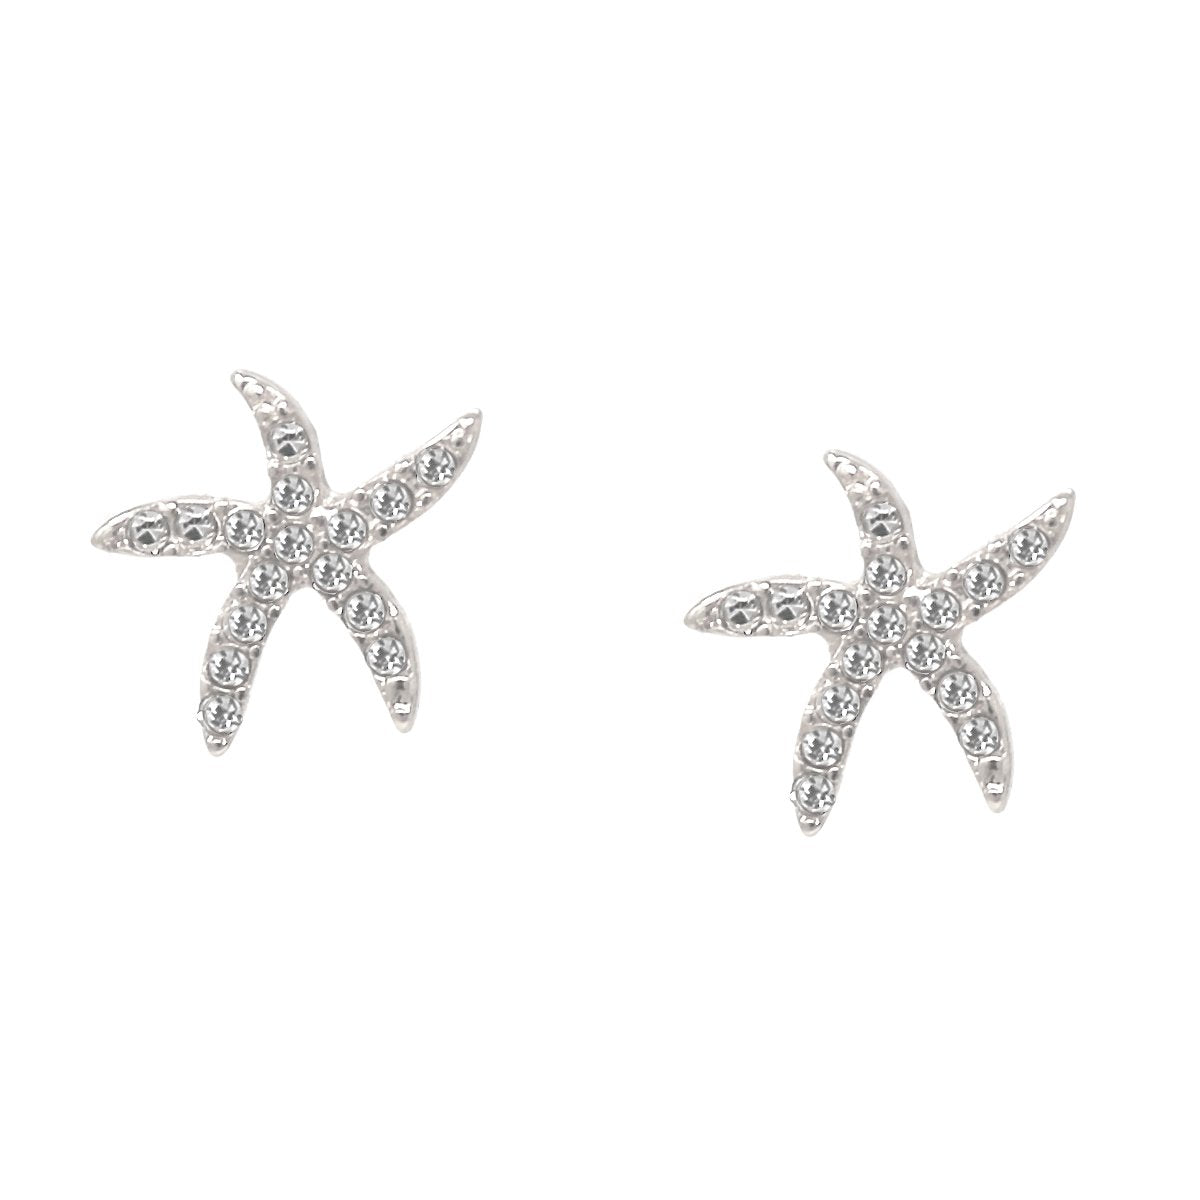 BITZ RHINESTONE PAVE MINI STARFISH STUD EARRINGS - TWO COLOR OPTIONS GOLD OR SILVER